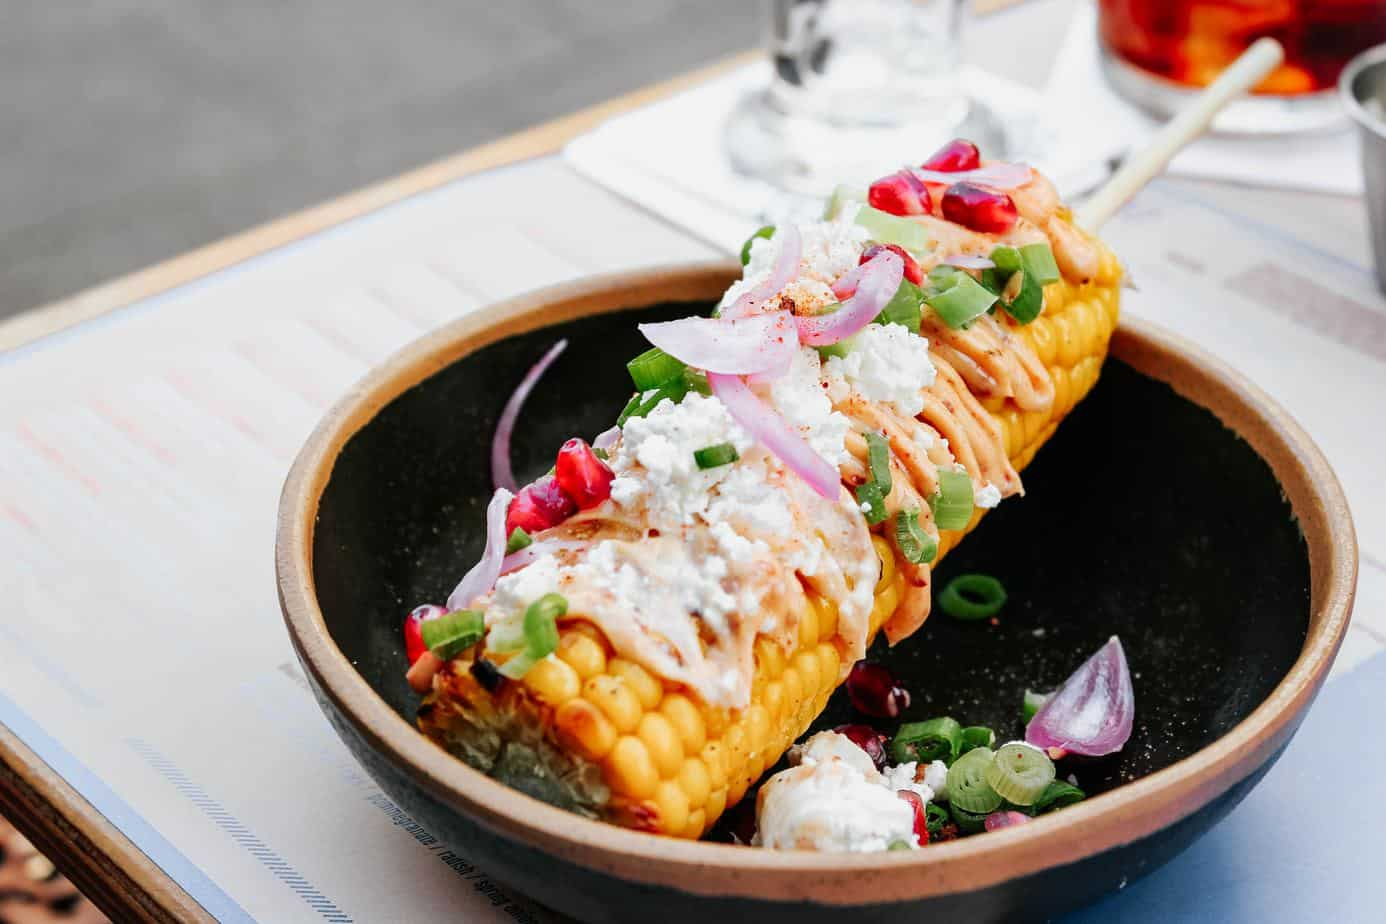 grilled mexican elotes corn on a skewer in a black ceramic bowl